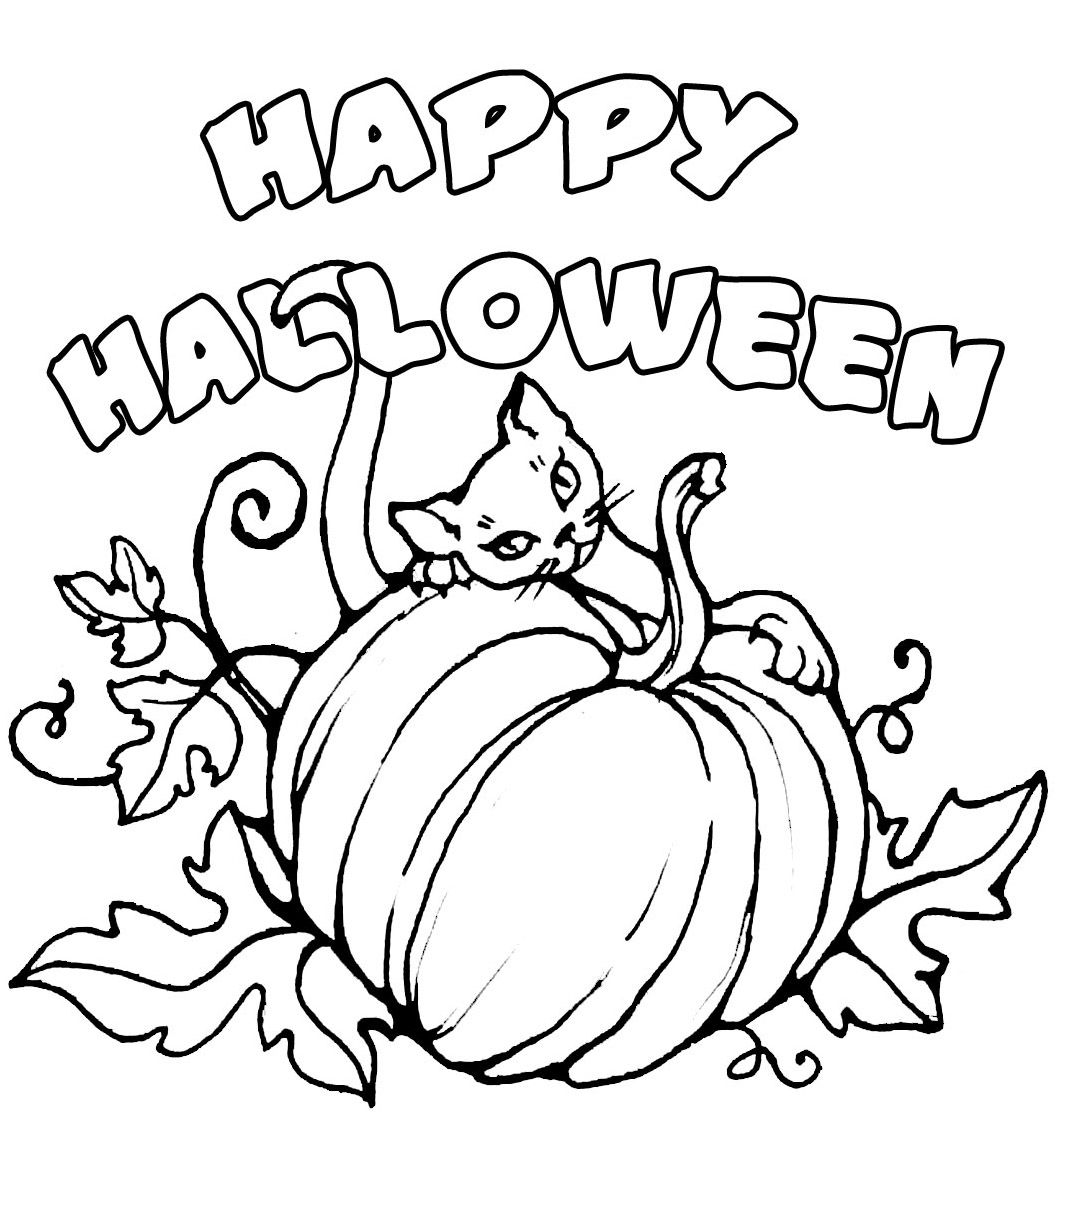 coloring halloween drawings halloweens day 2017 activities party themes pumpkin halloween drawings coloring